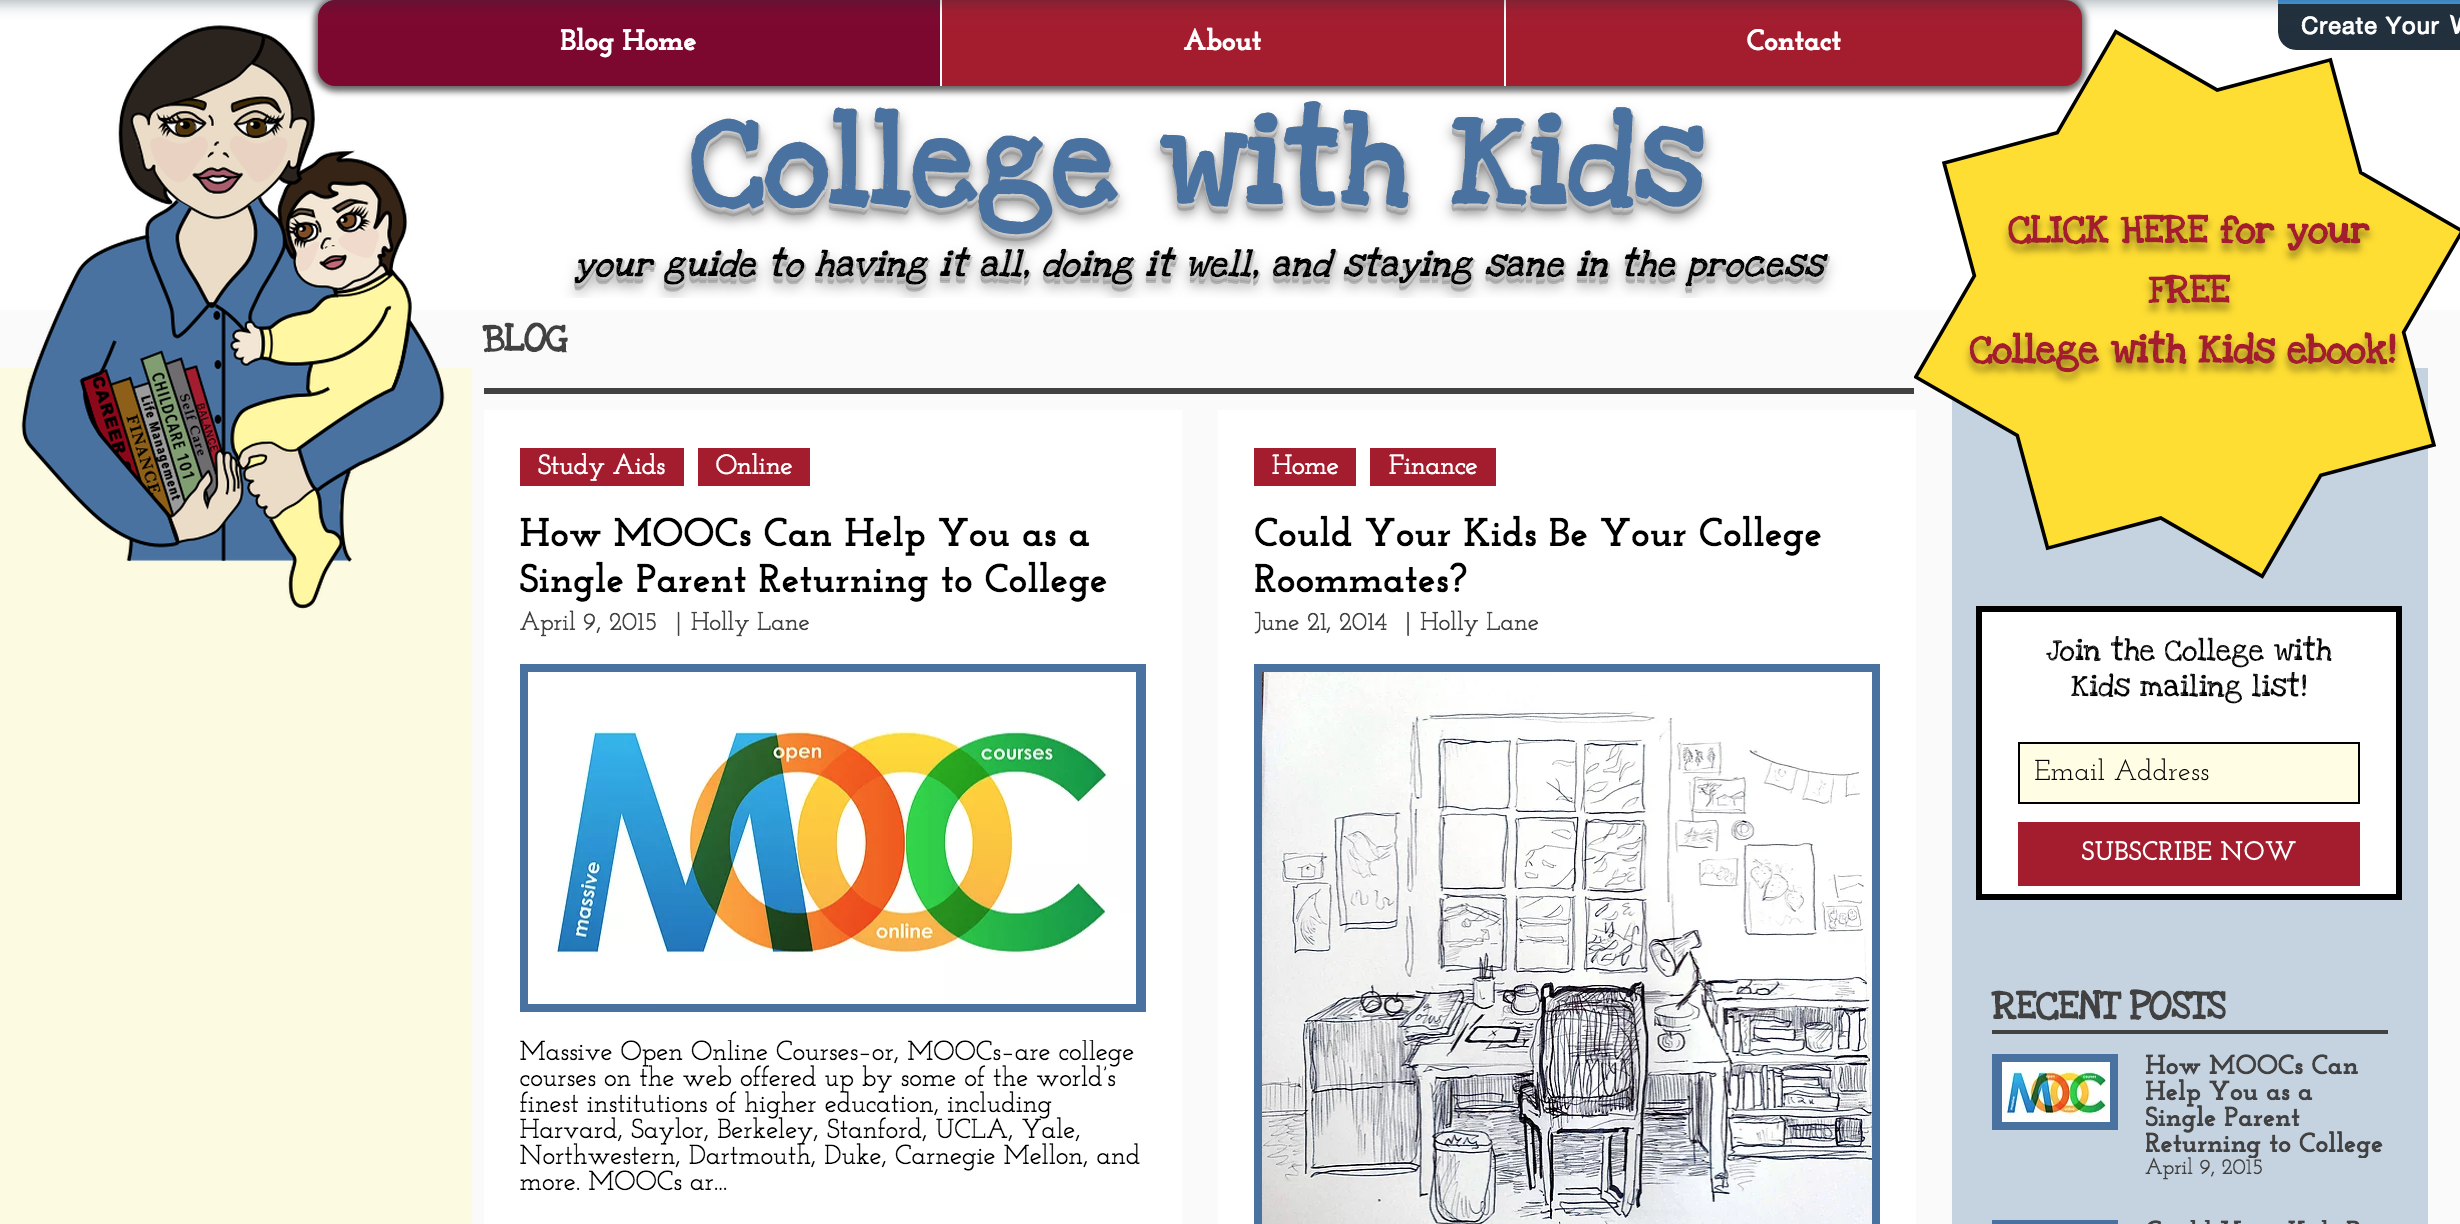 College with Kids